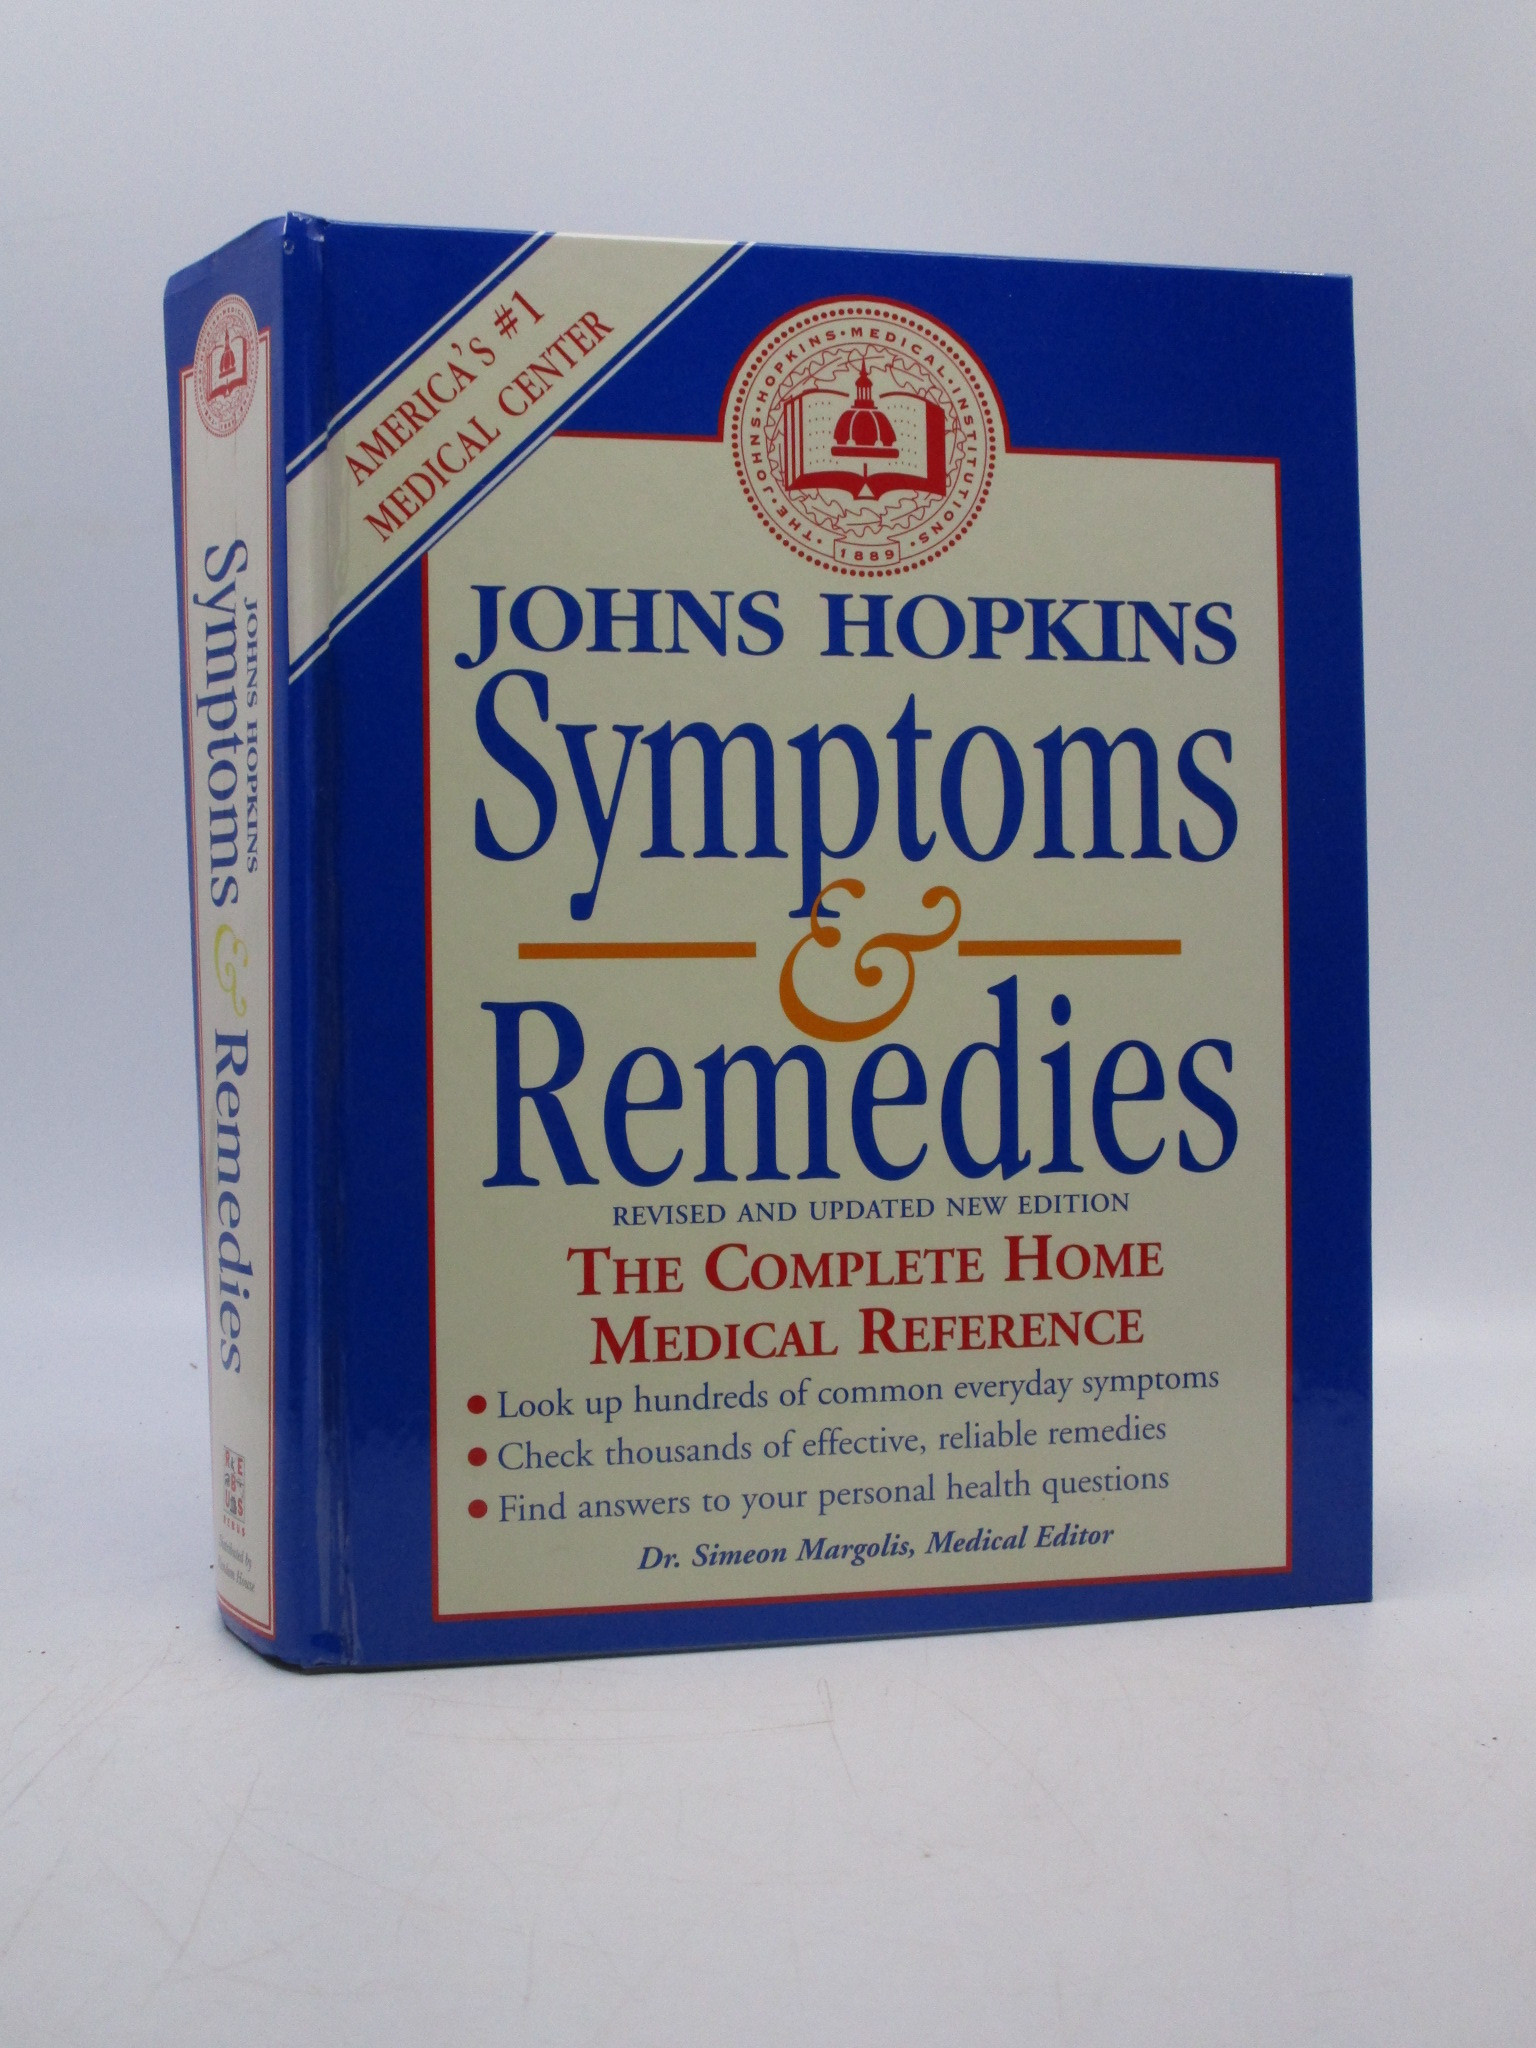 Image for Johns Hopkins Symptoms & Remedies: The Complete Home Medical Reference